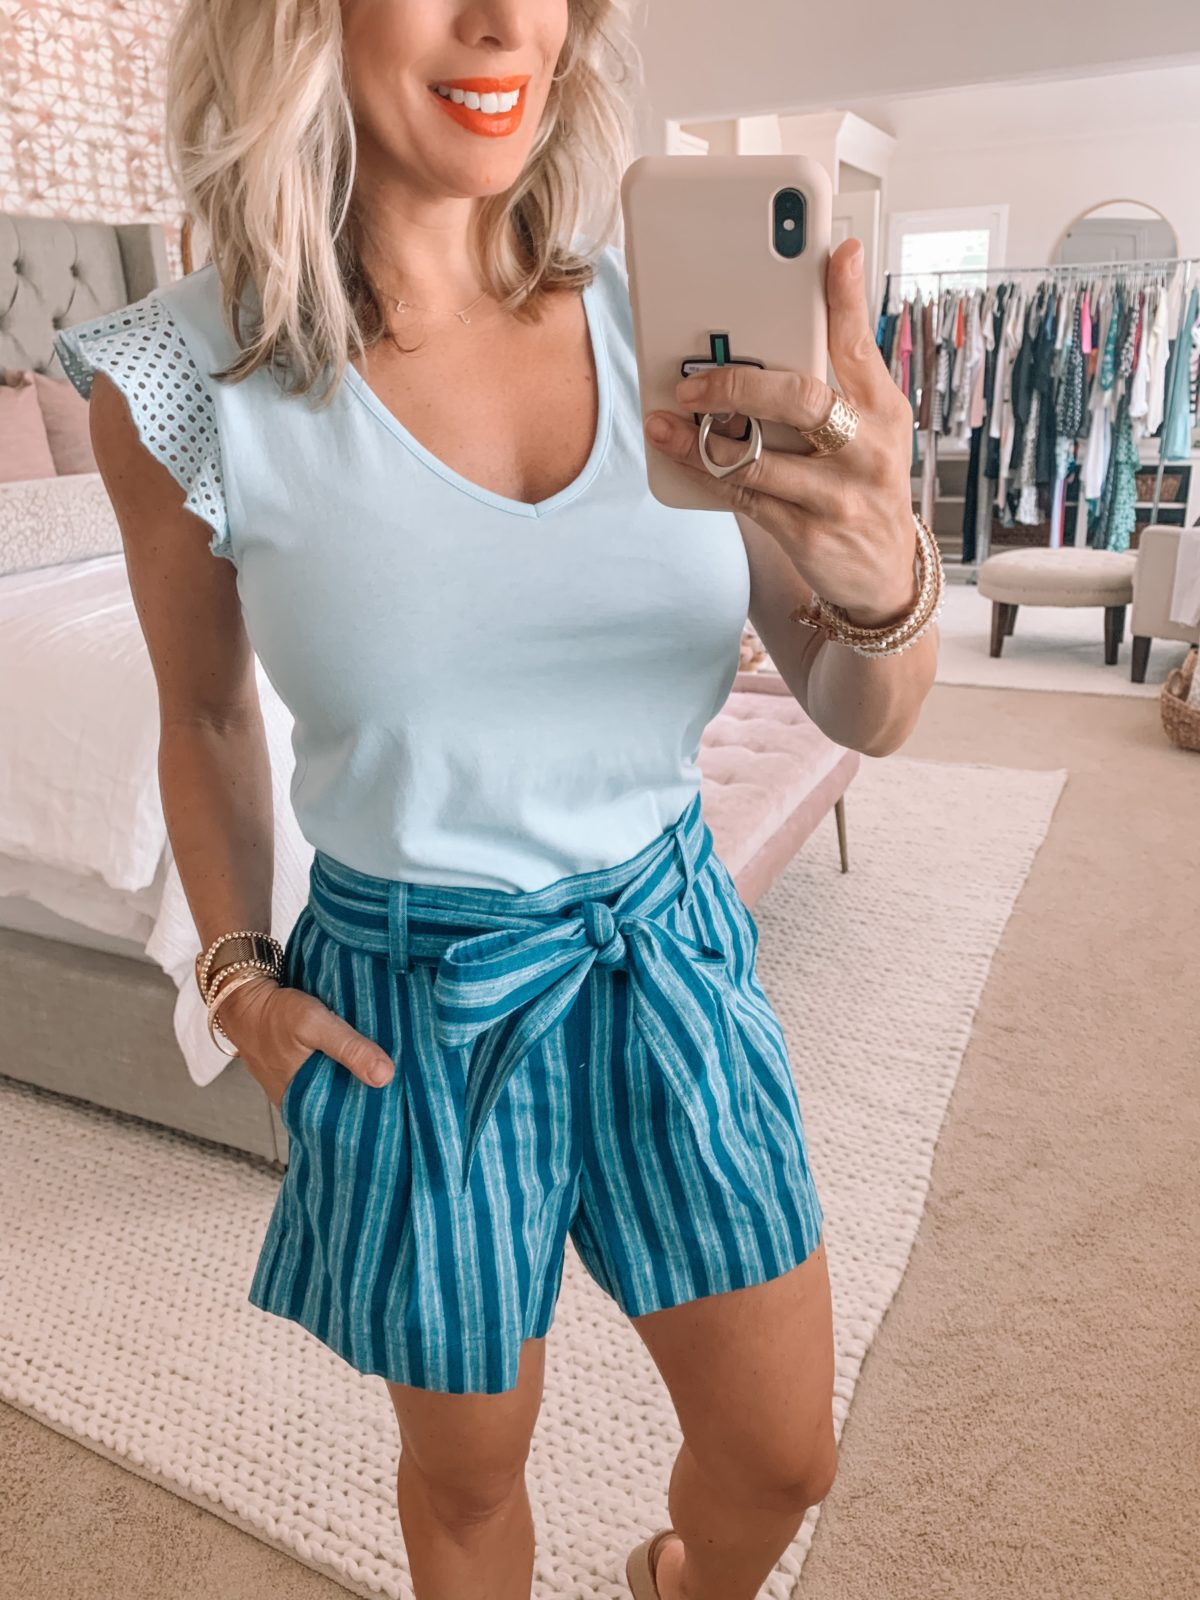 Summer outfit - blue shorts and top